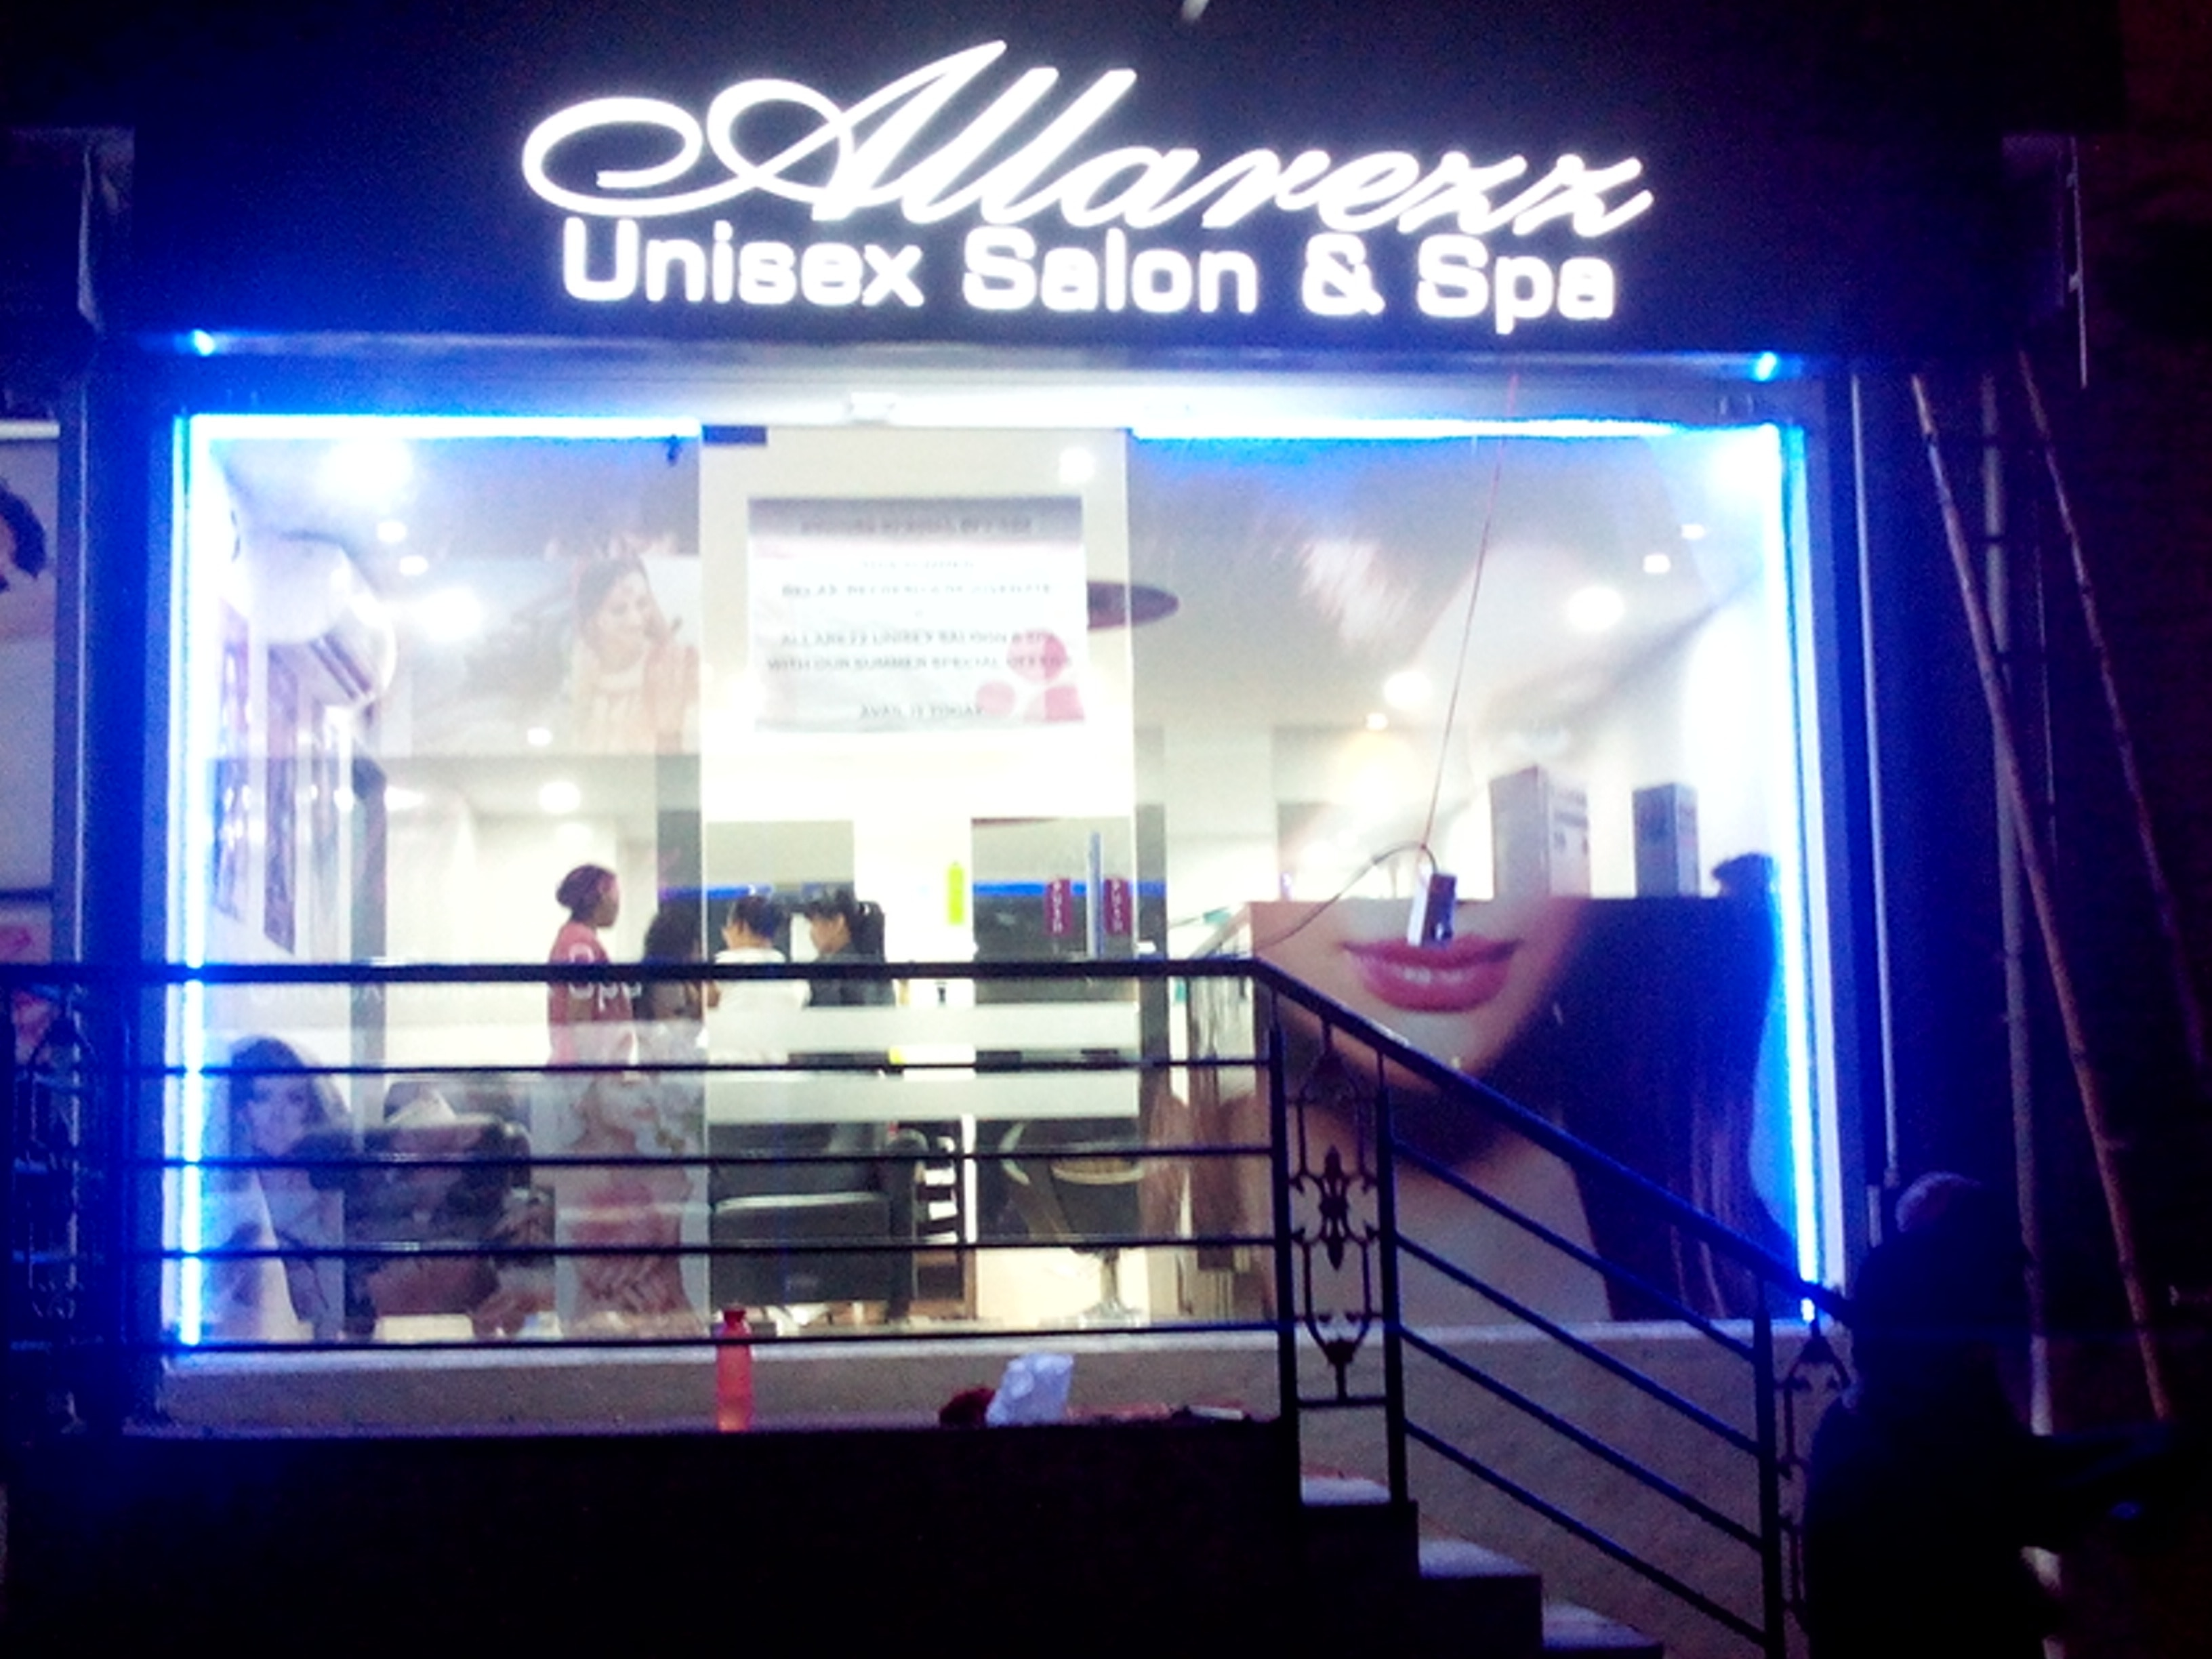 Allarezz Unisex Salon & Spa